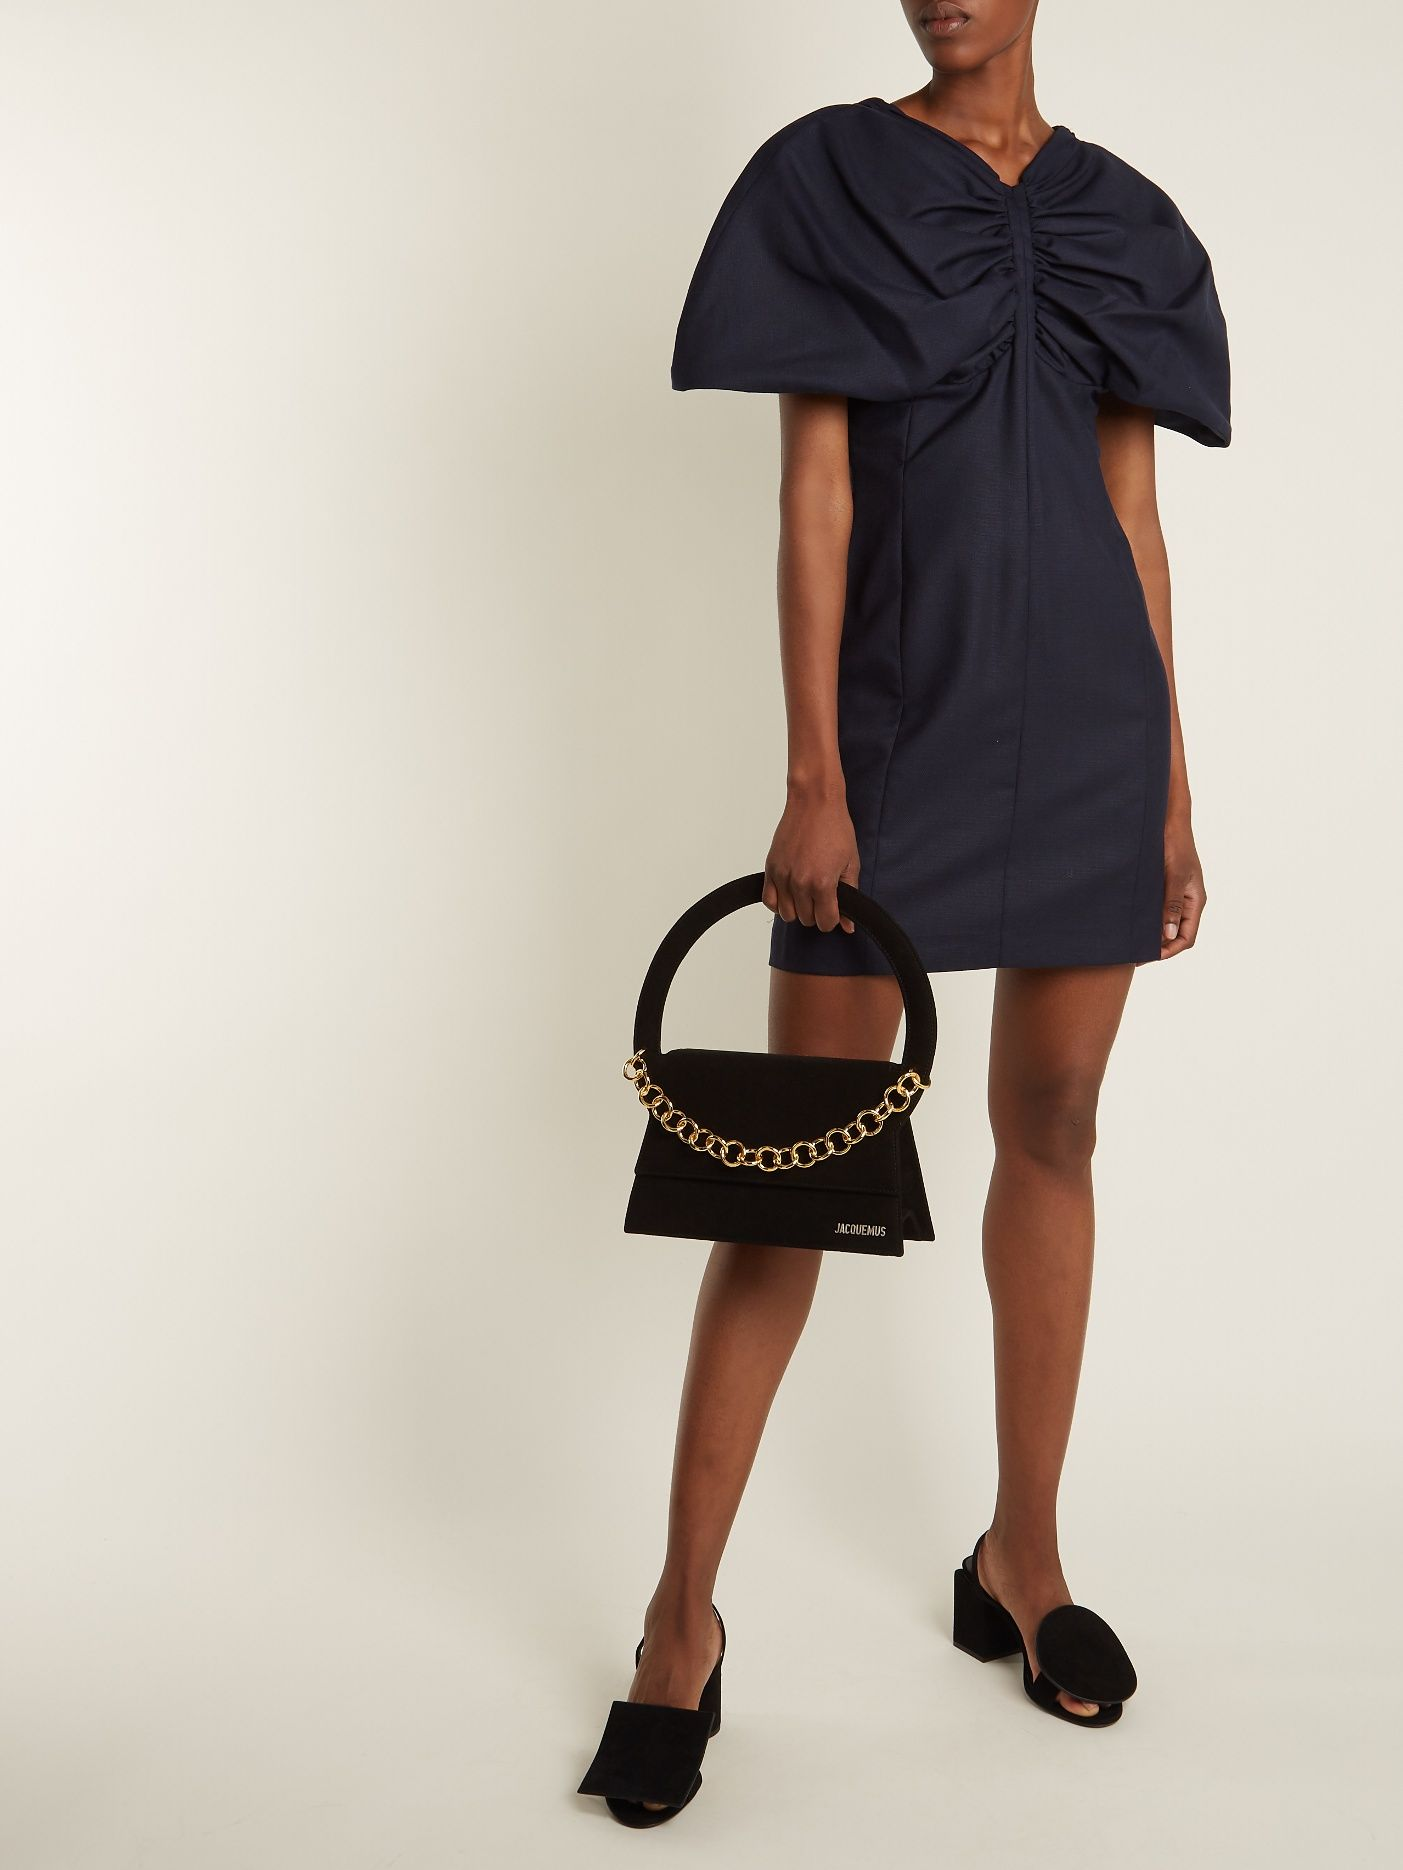 c0f77ba729d4 Click here to buy Jacquemus Le Sac Rond suede shoulder bag at  MATCHESFASHION.COM